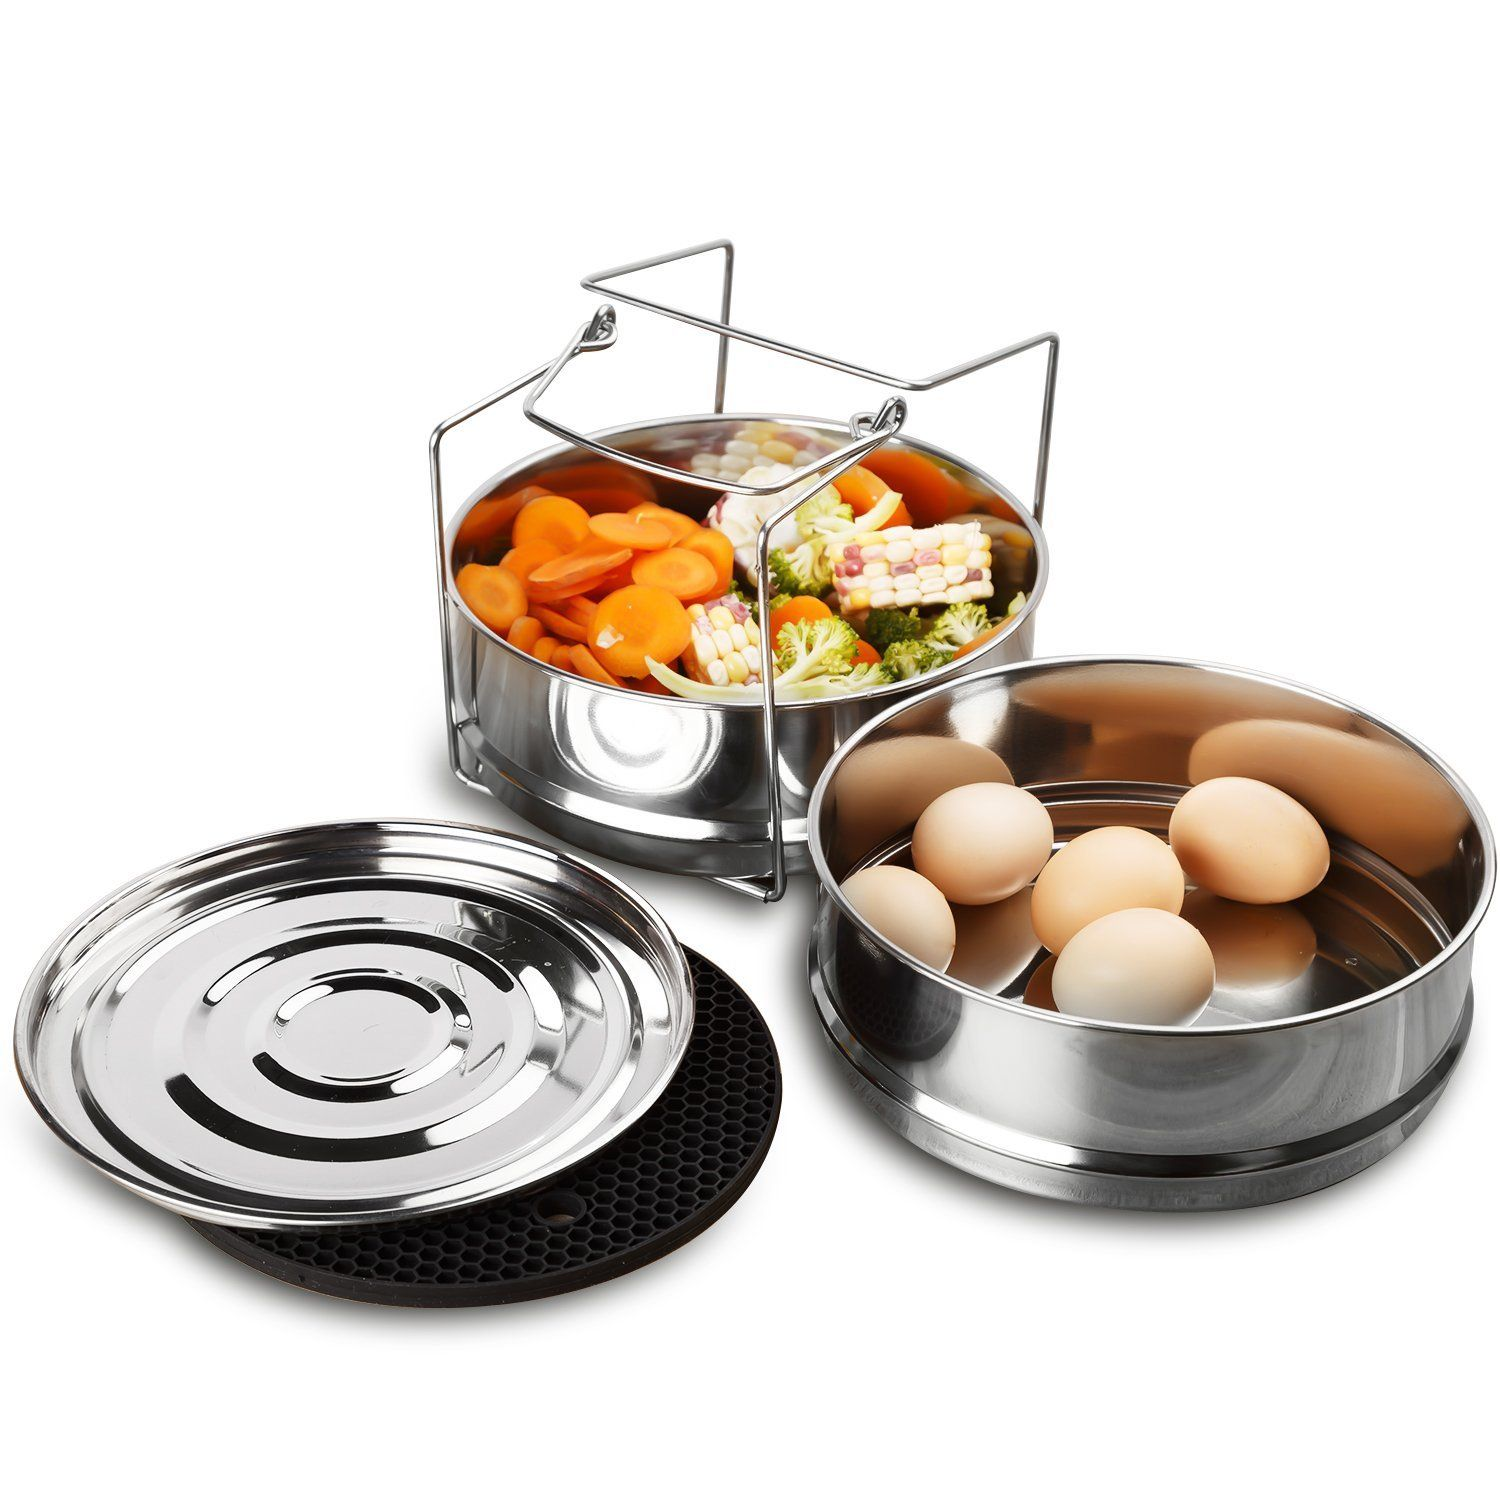 Aozita stackable 2 tier stainless steel pressure cooker